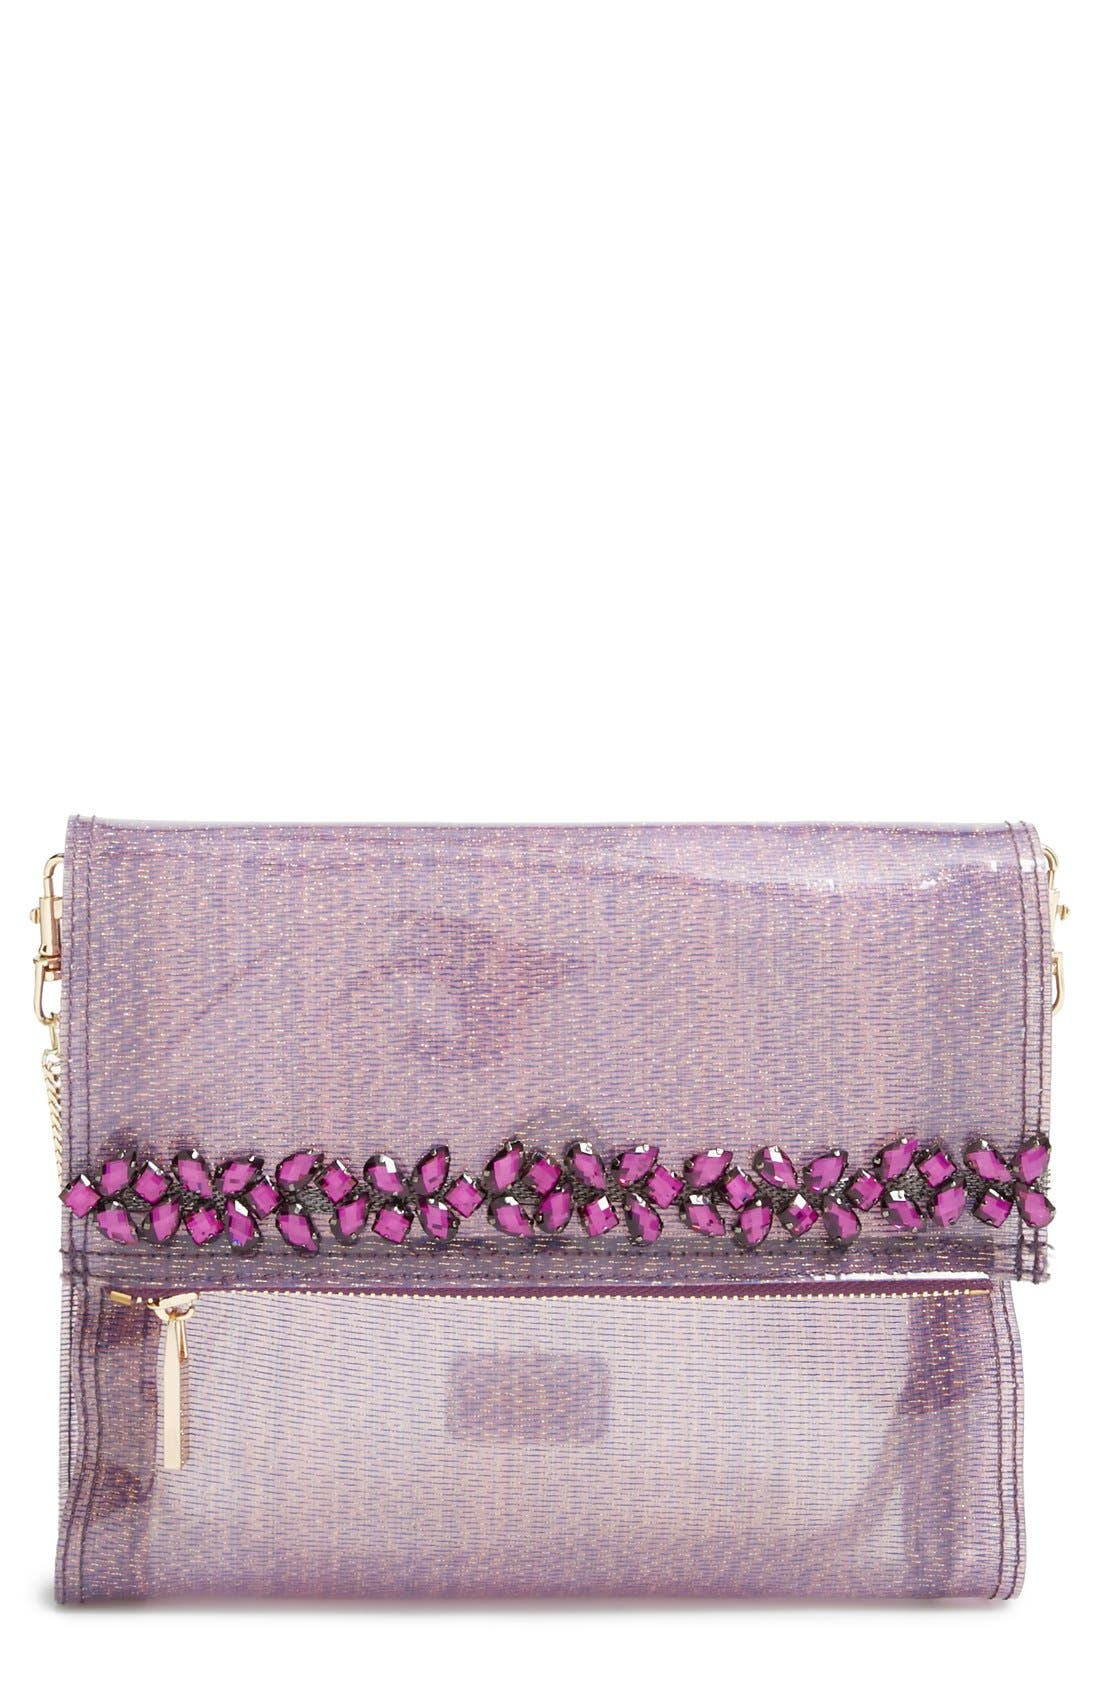 Alternate Image 1 Selected - Deux Lux 'Pasha' Crystal Embellished Convertible Foldover Clutch